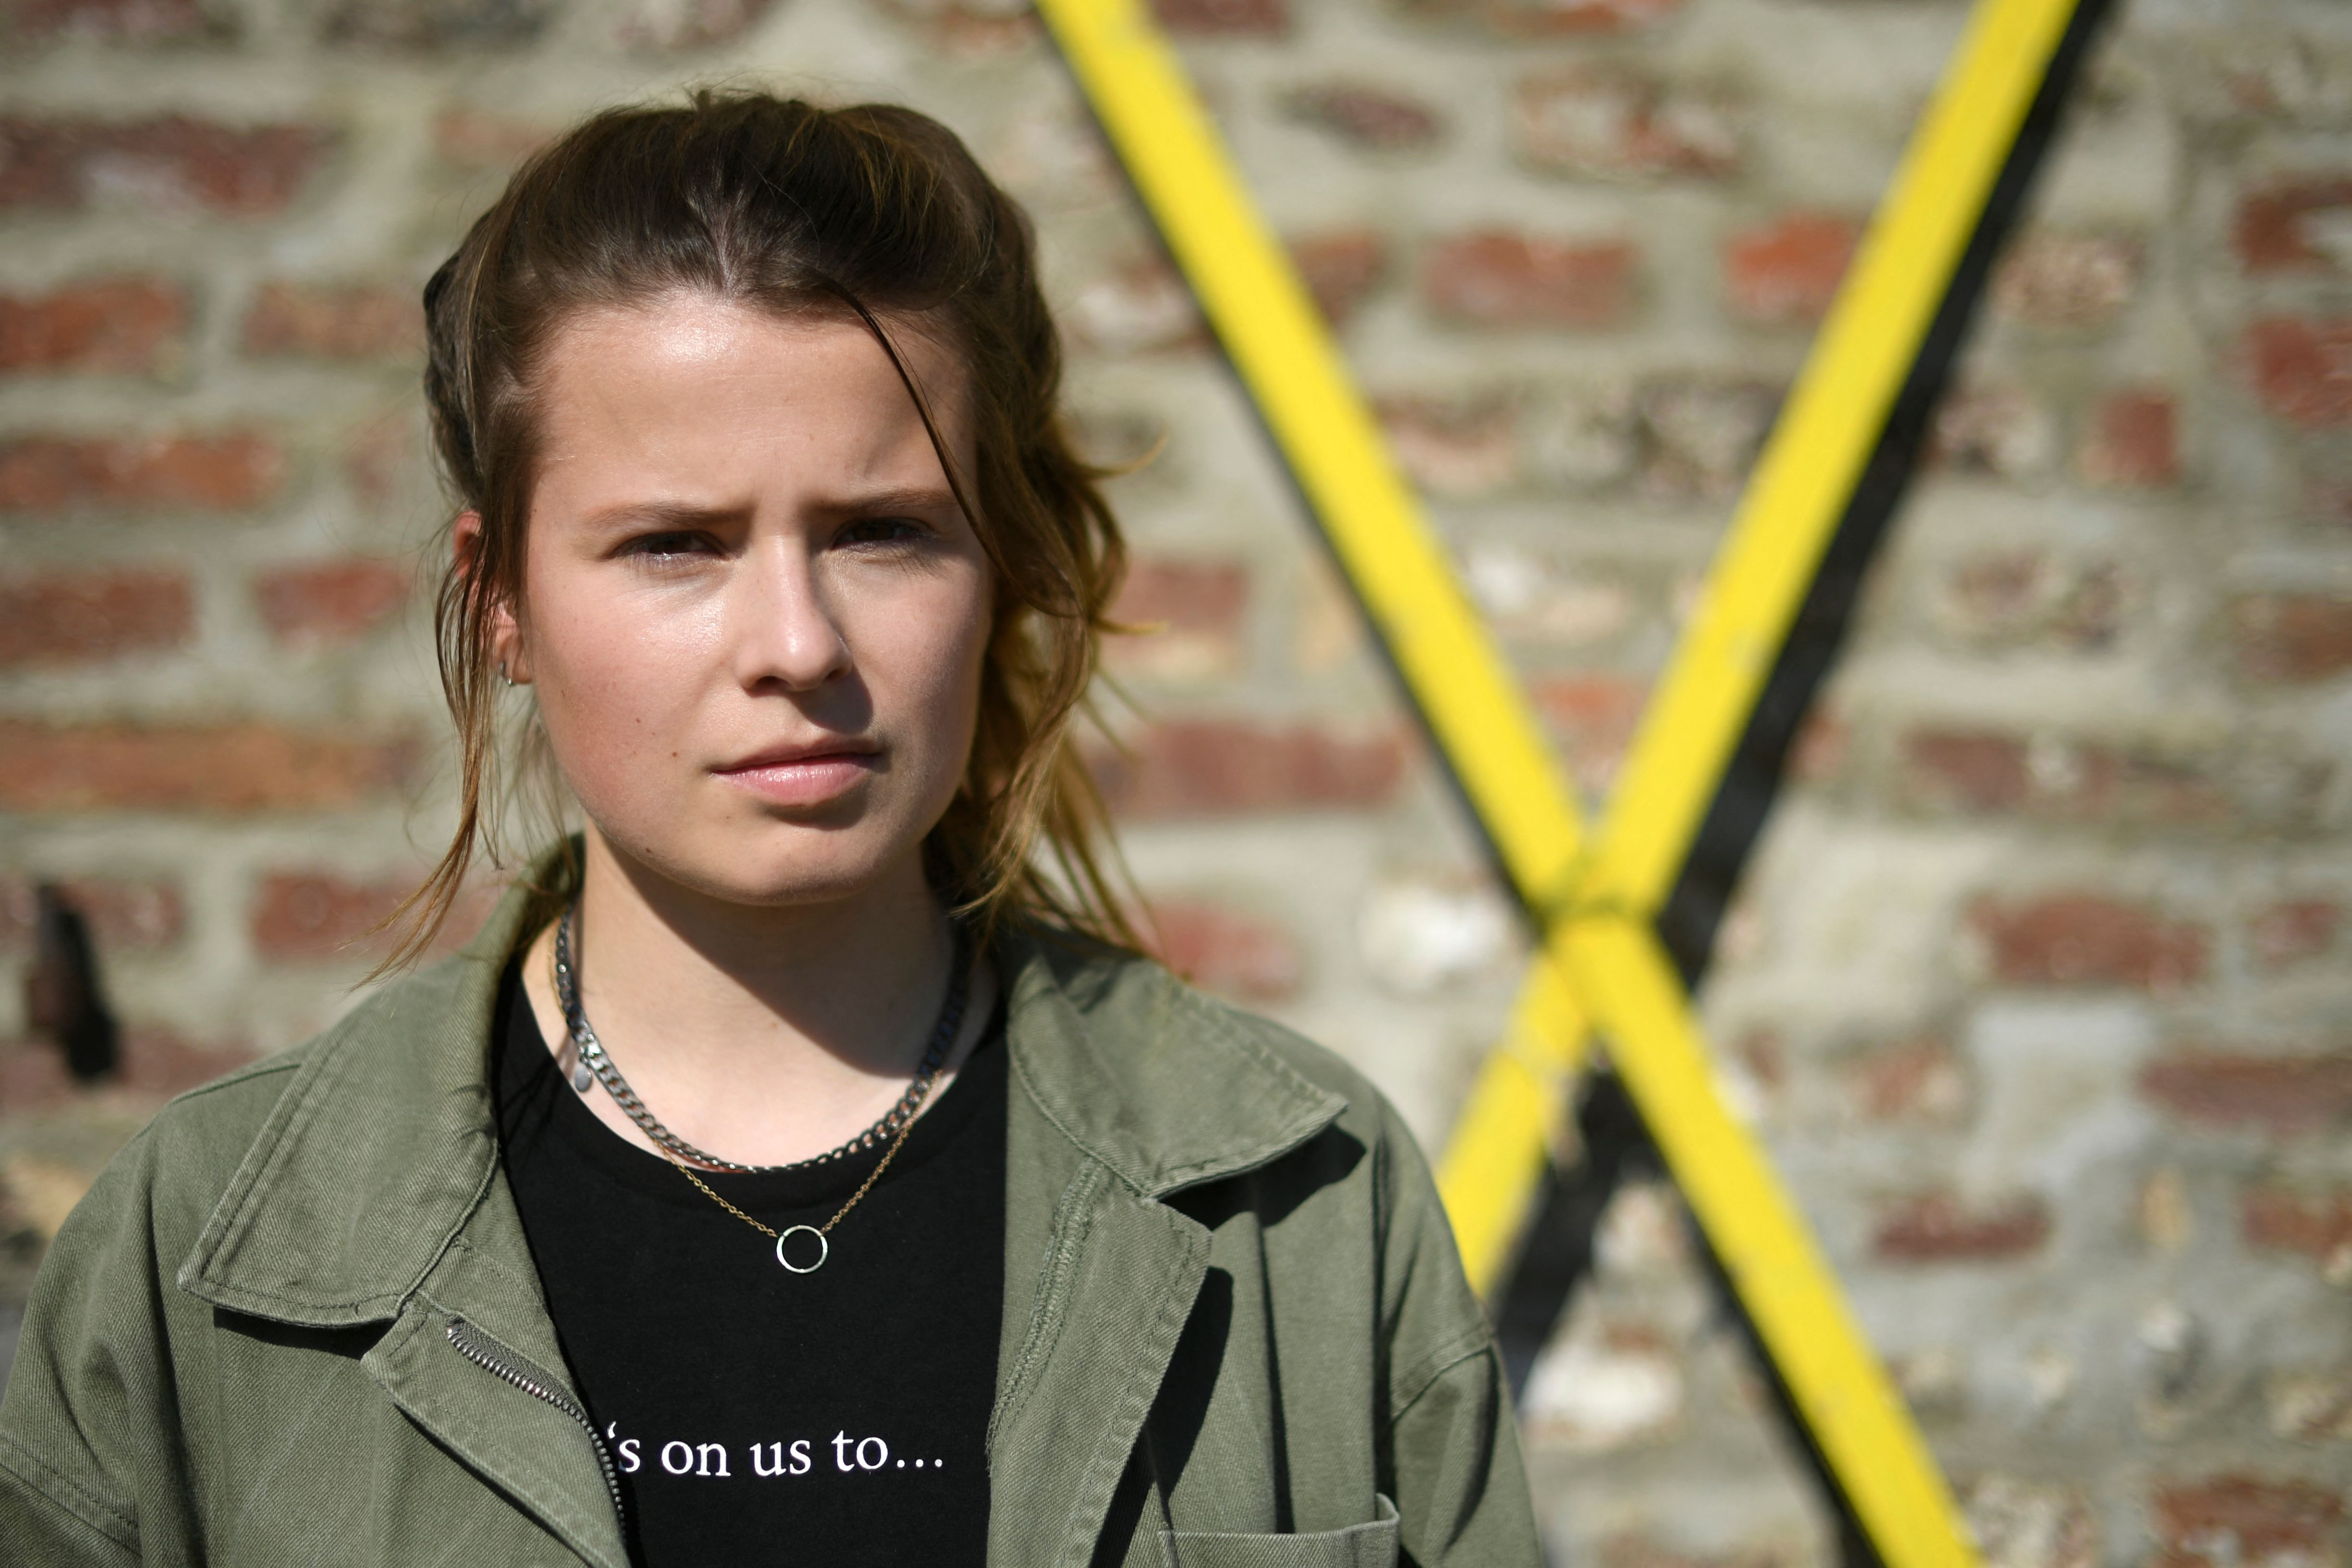 German climate activist Luisa Neubauer looks on as she and other activists give a press statement in Luetzerath, western Germany, on Saturday, September 25.